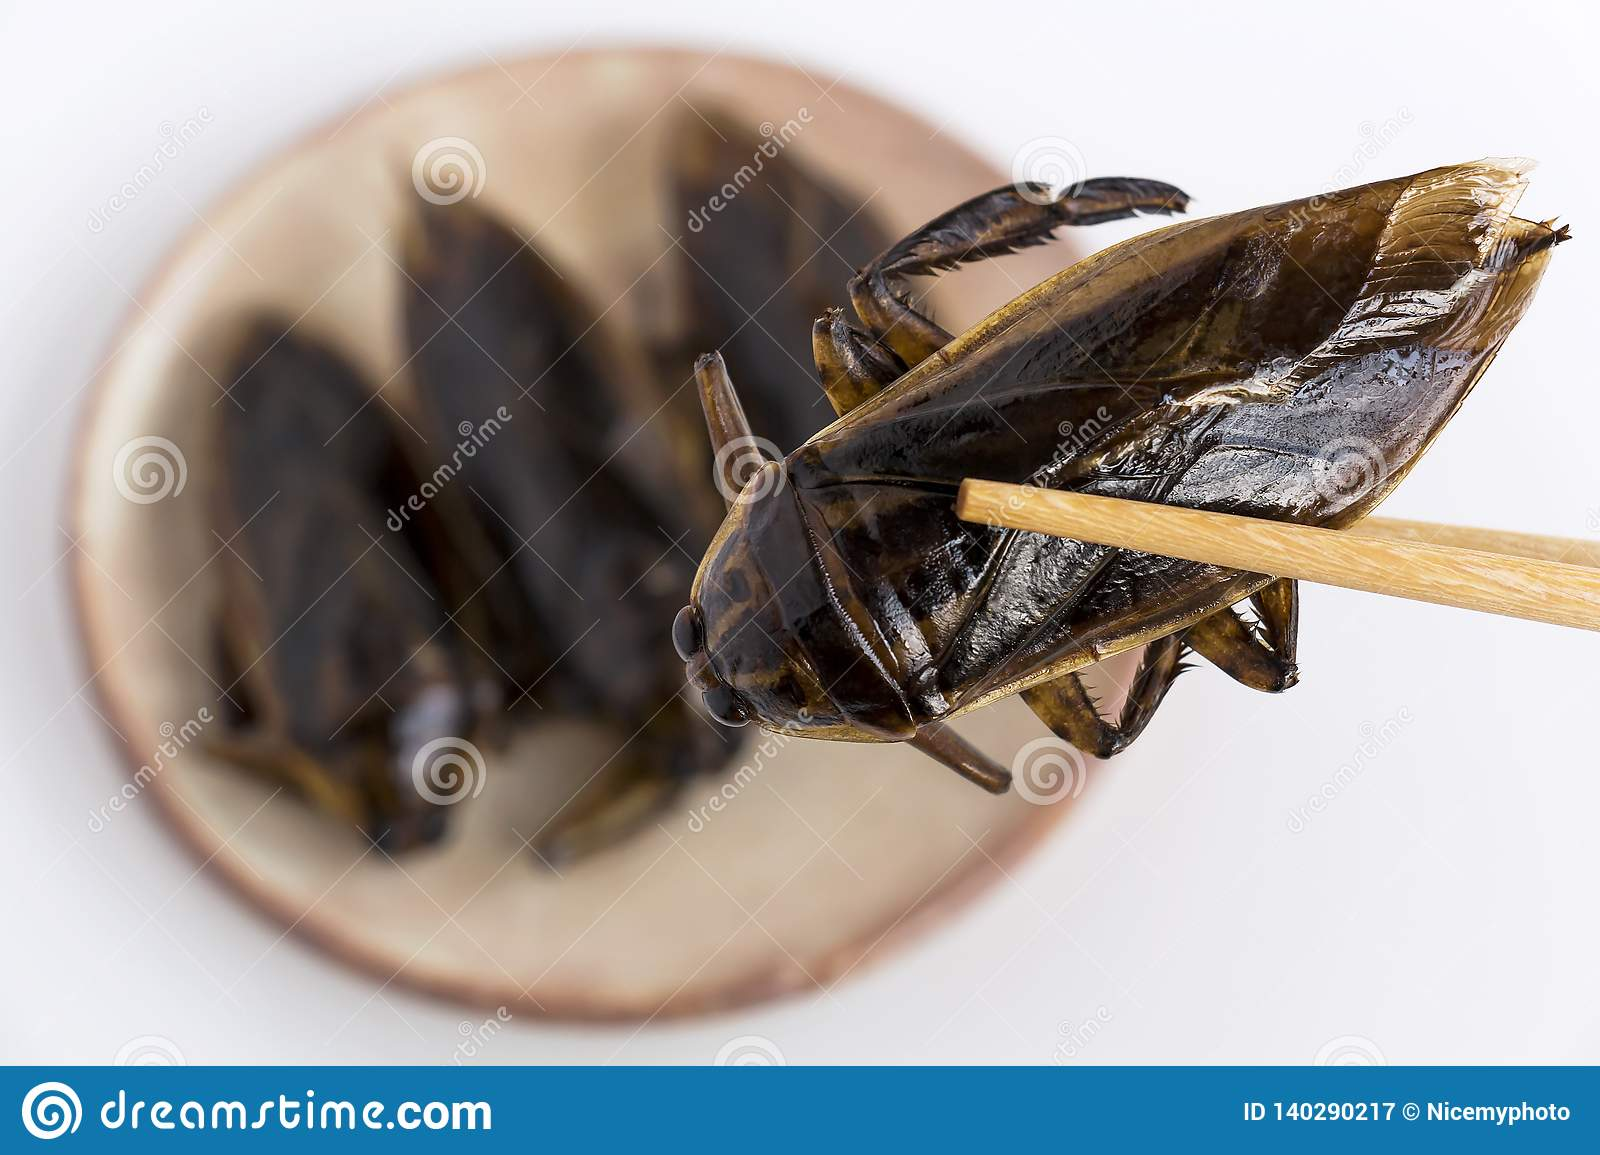 Giant Water Bug is edible insect for eating as food Insects deep-fried crispy snack on plate and chopsticks on white background,